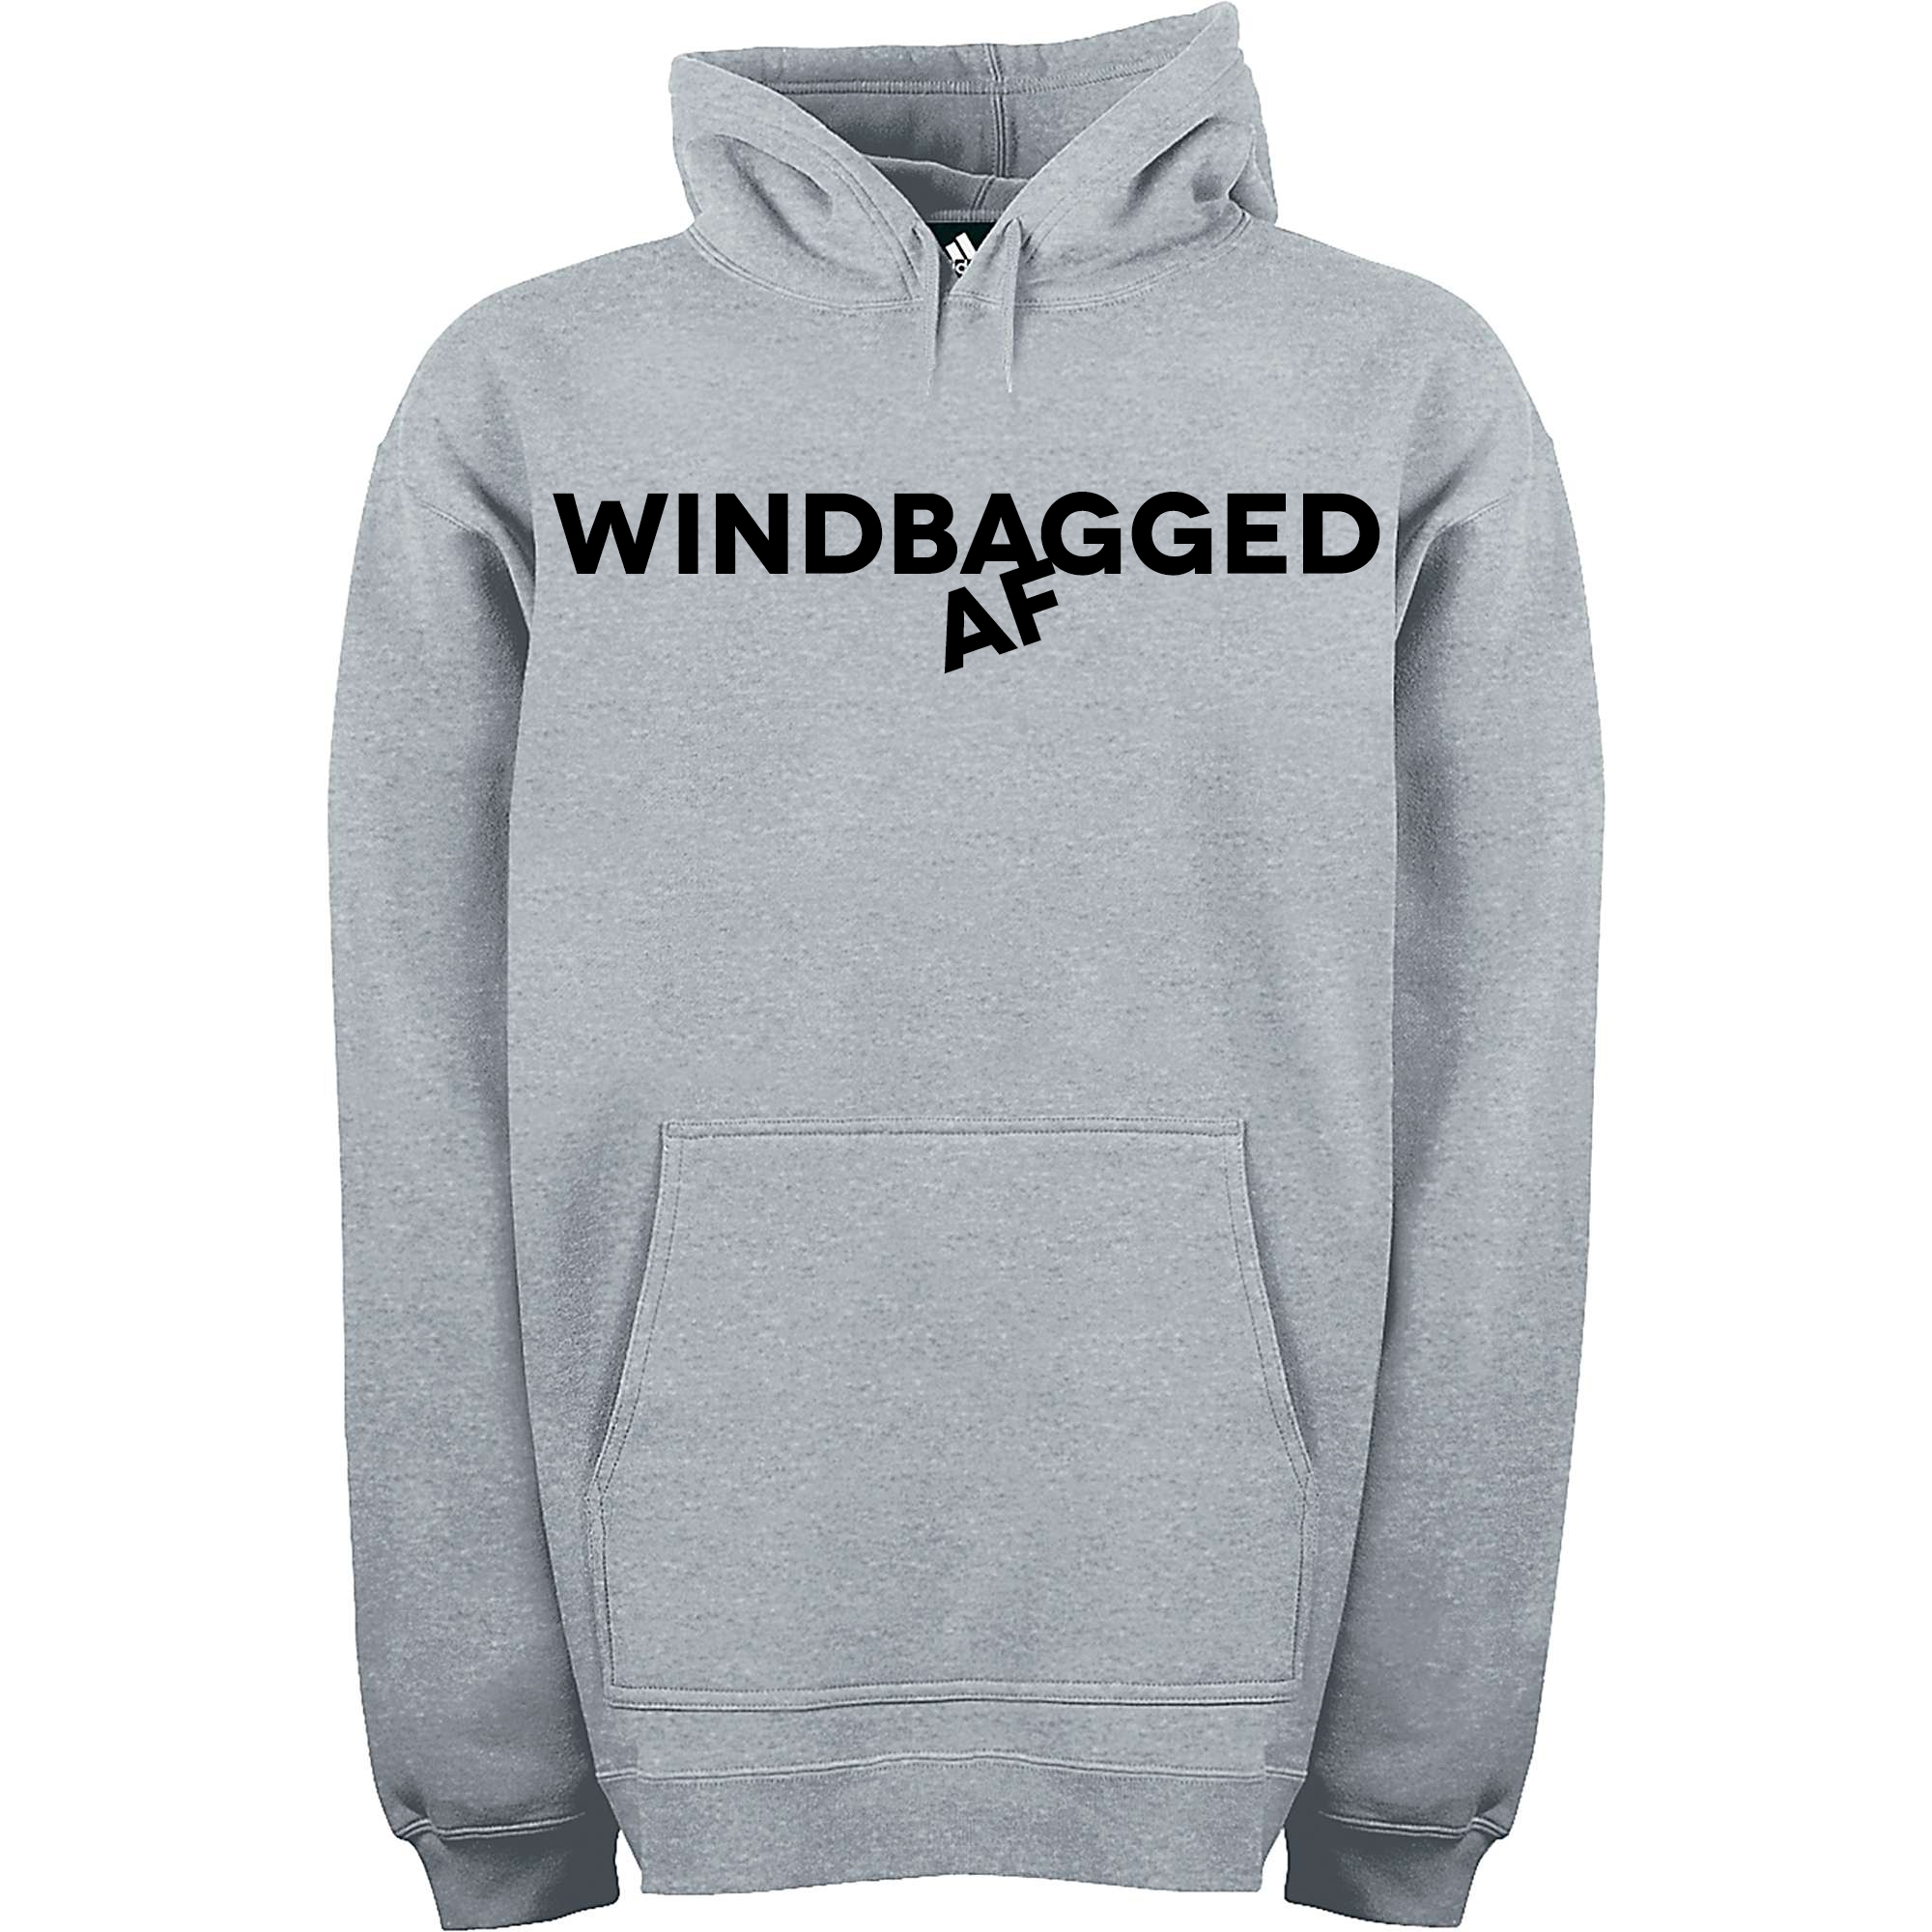 WINDBAGGED